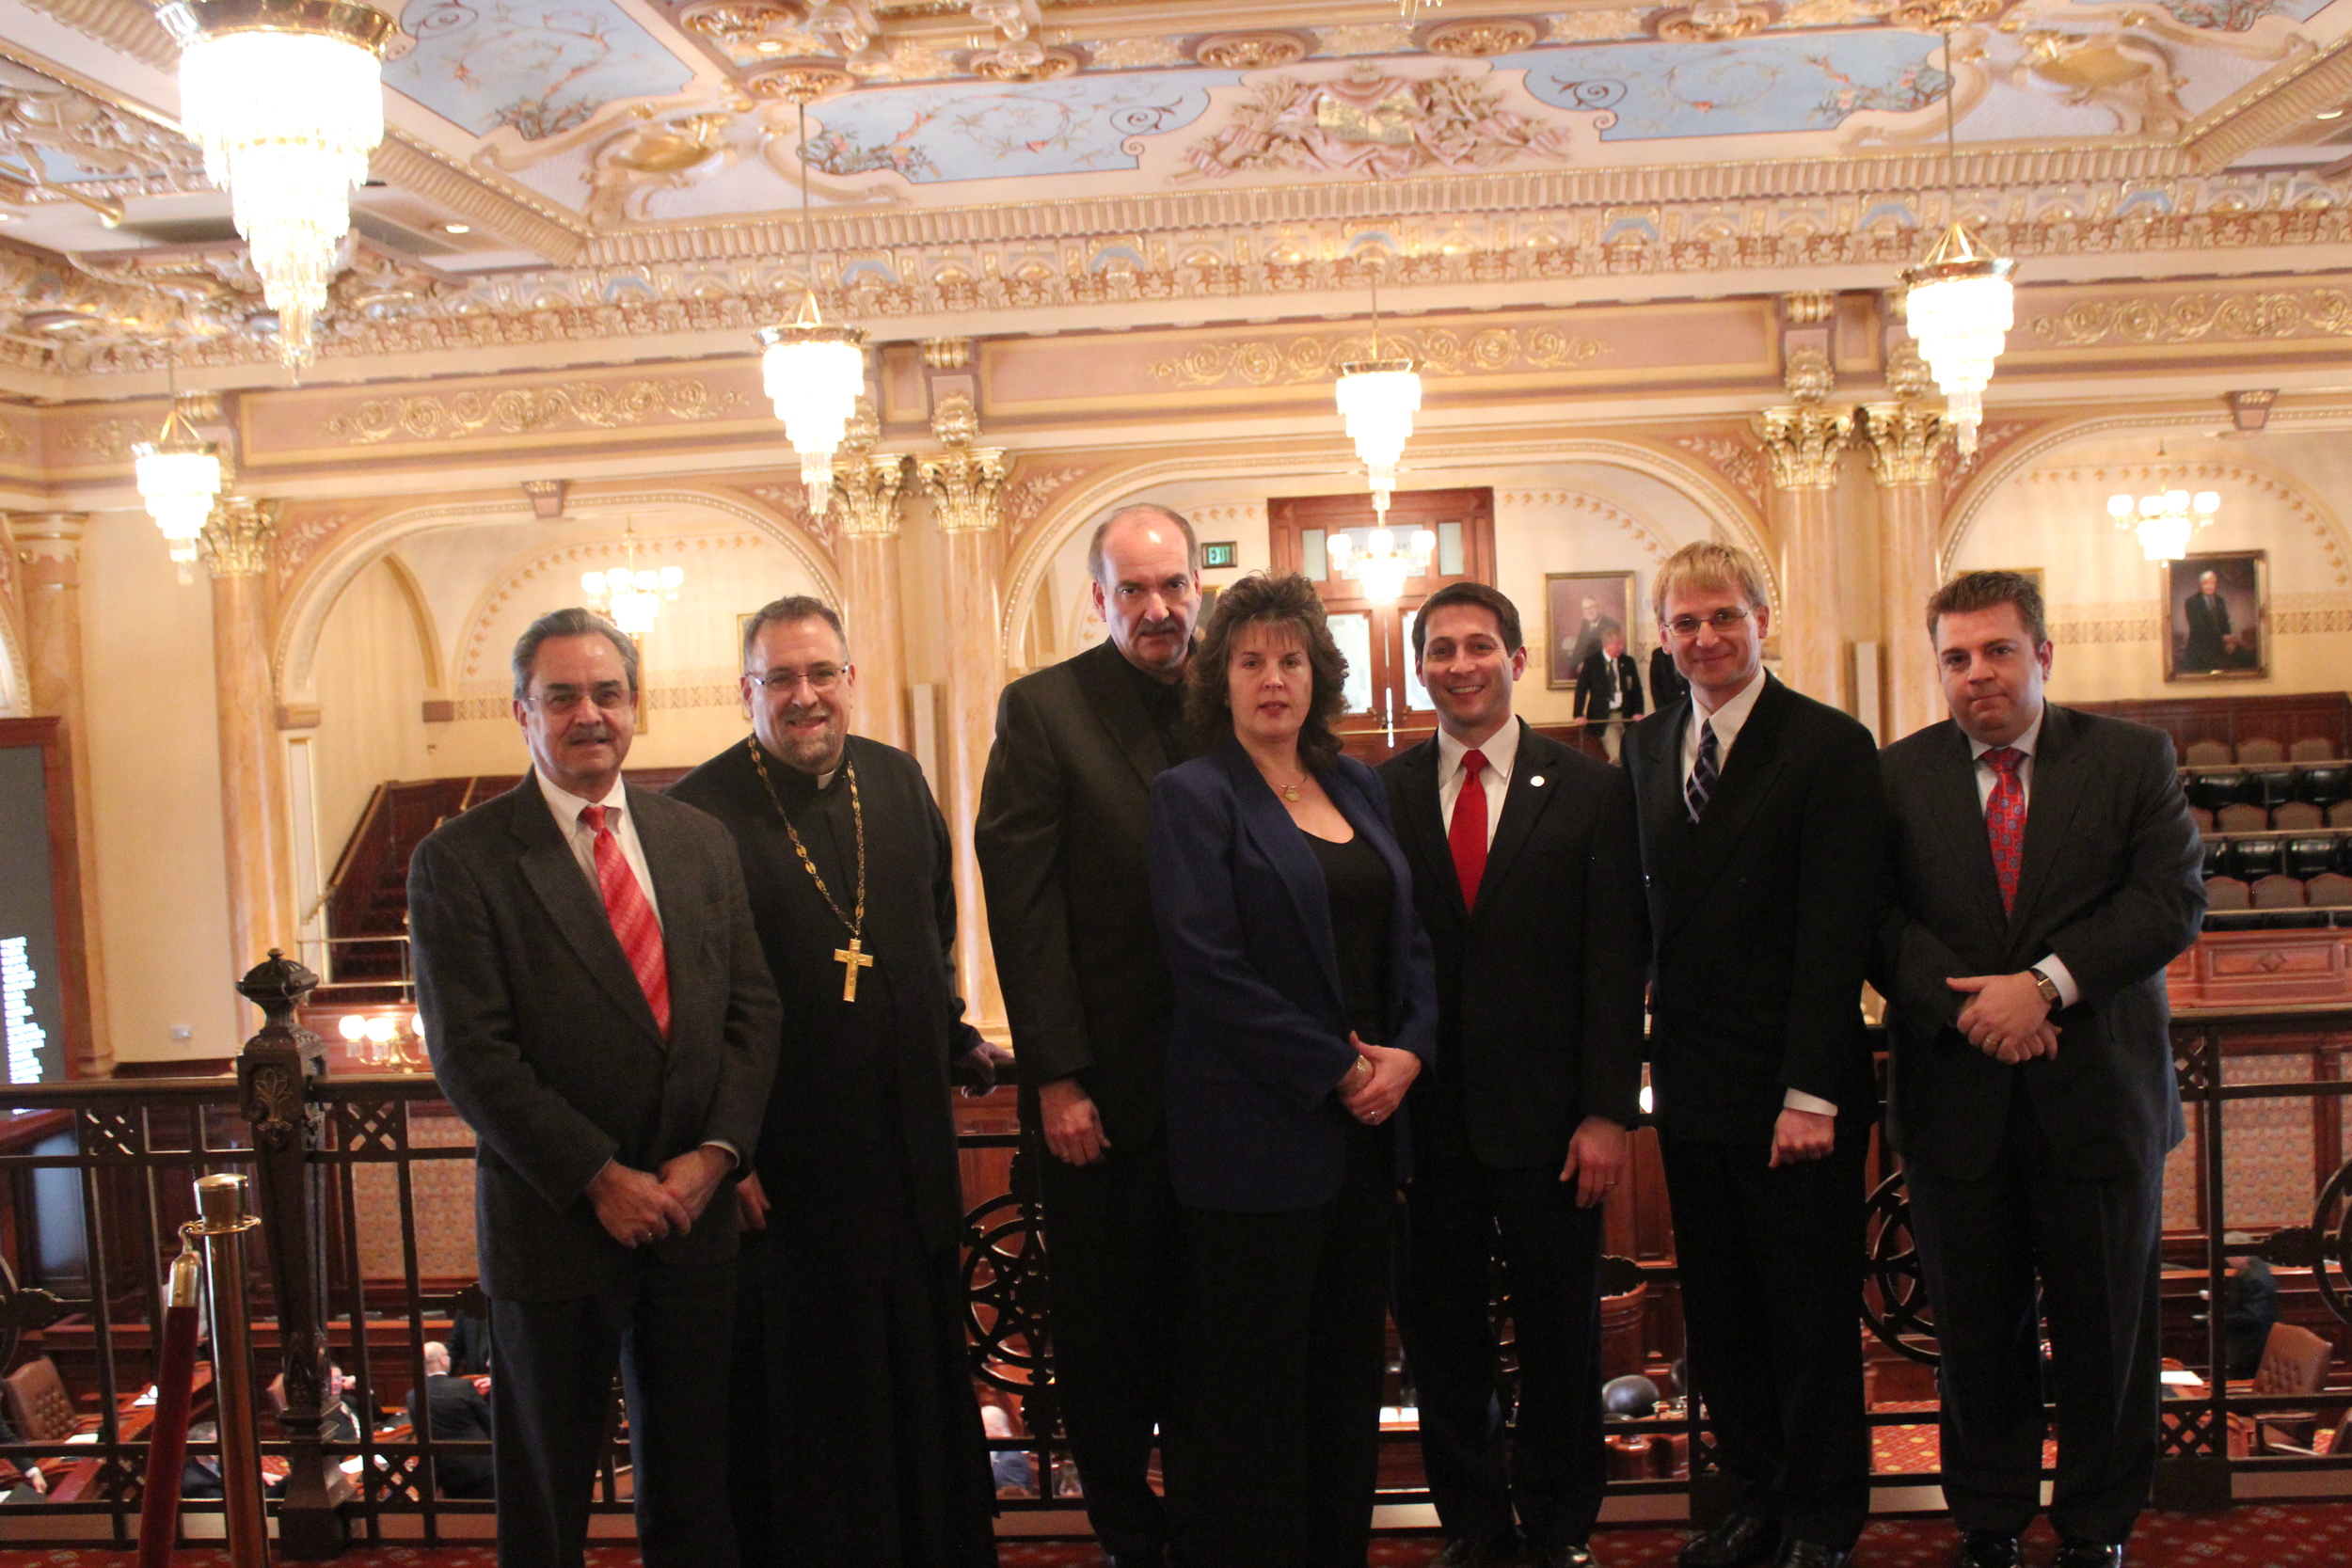 In the Balcony of the Illinois State Capitol. From left to right:Nick Xamis (Pres. Parish Council, St. Anthony GOC, Springfield, IL), Fr. George Pyle Pastor of St. Anthony, Springfield, IL, Frank and Katena Lagouros, Senator J. Barickman, John Ackerman, George Vranas (Pres. Parish Council, St. Nicholas GOC,Oak Lawn, IL) [Members of the Friends of the Ec. Patriarchate of Peoria are F. & K. Lagouros and J. Ackerman]